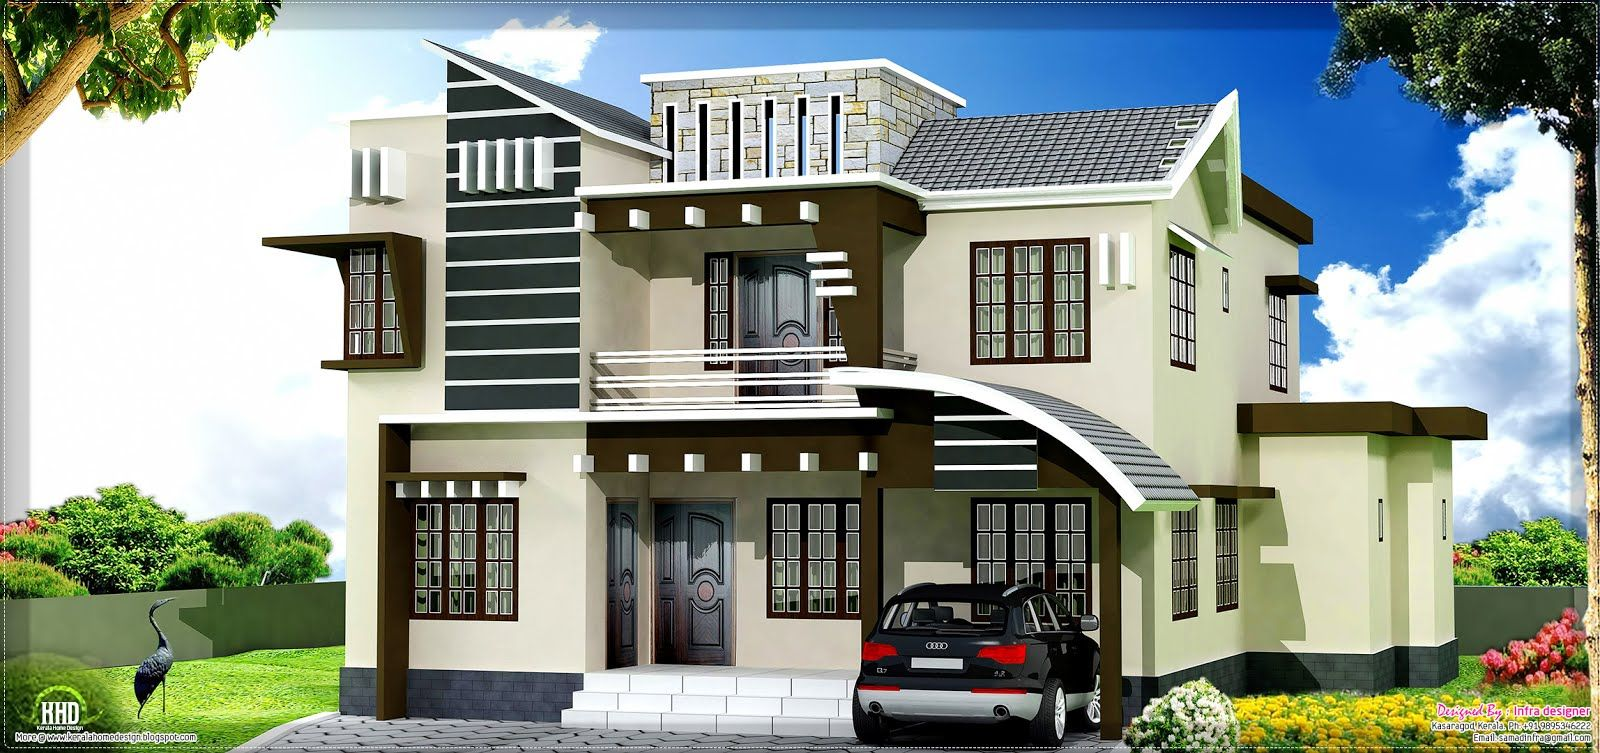 2450 sq.feet home design from kasaragod, kerala - kerala home